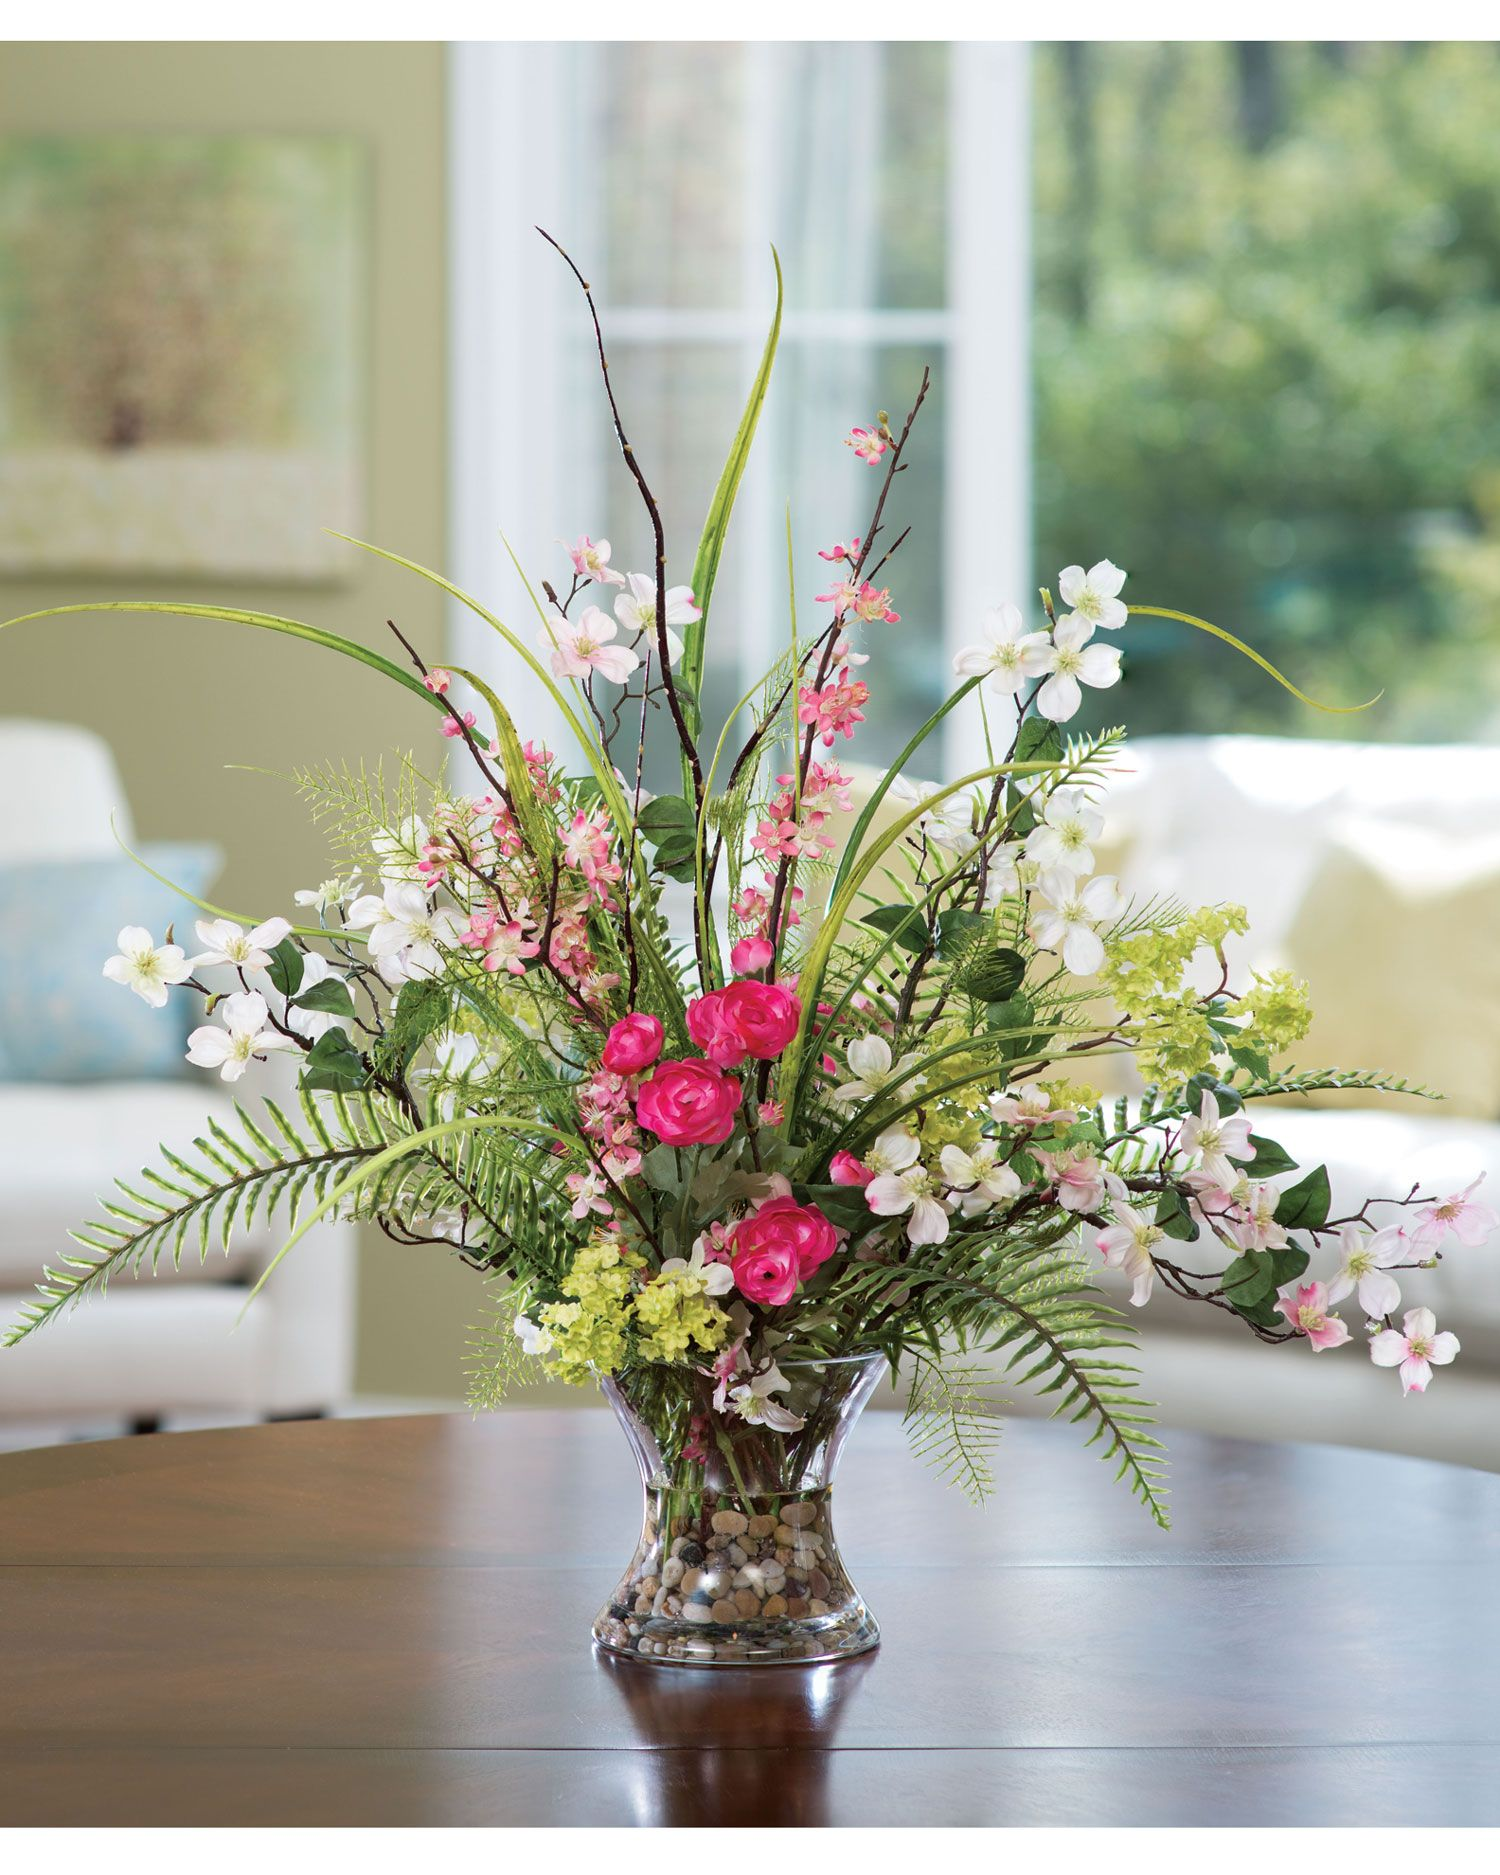 Fake Floral Arrangements For Home Spring Decorating With Dogwood Ranunculus And Fern Silk